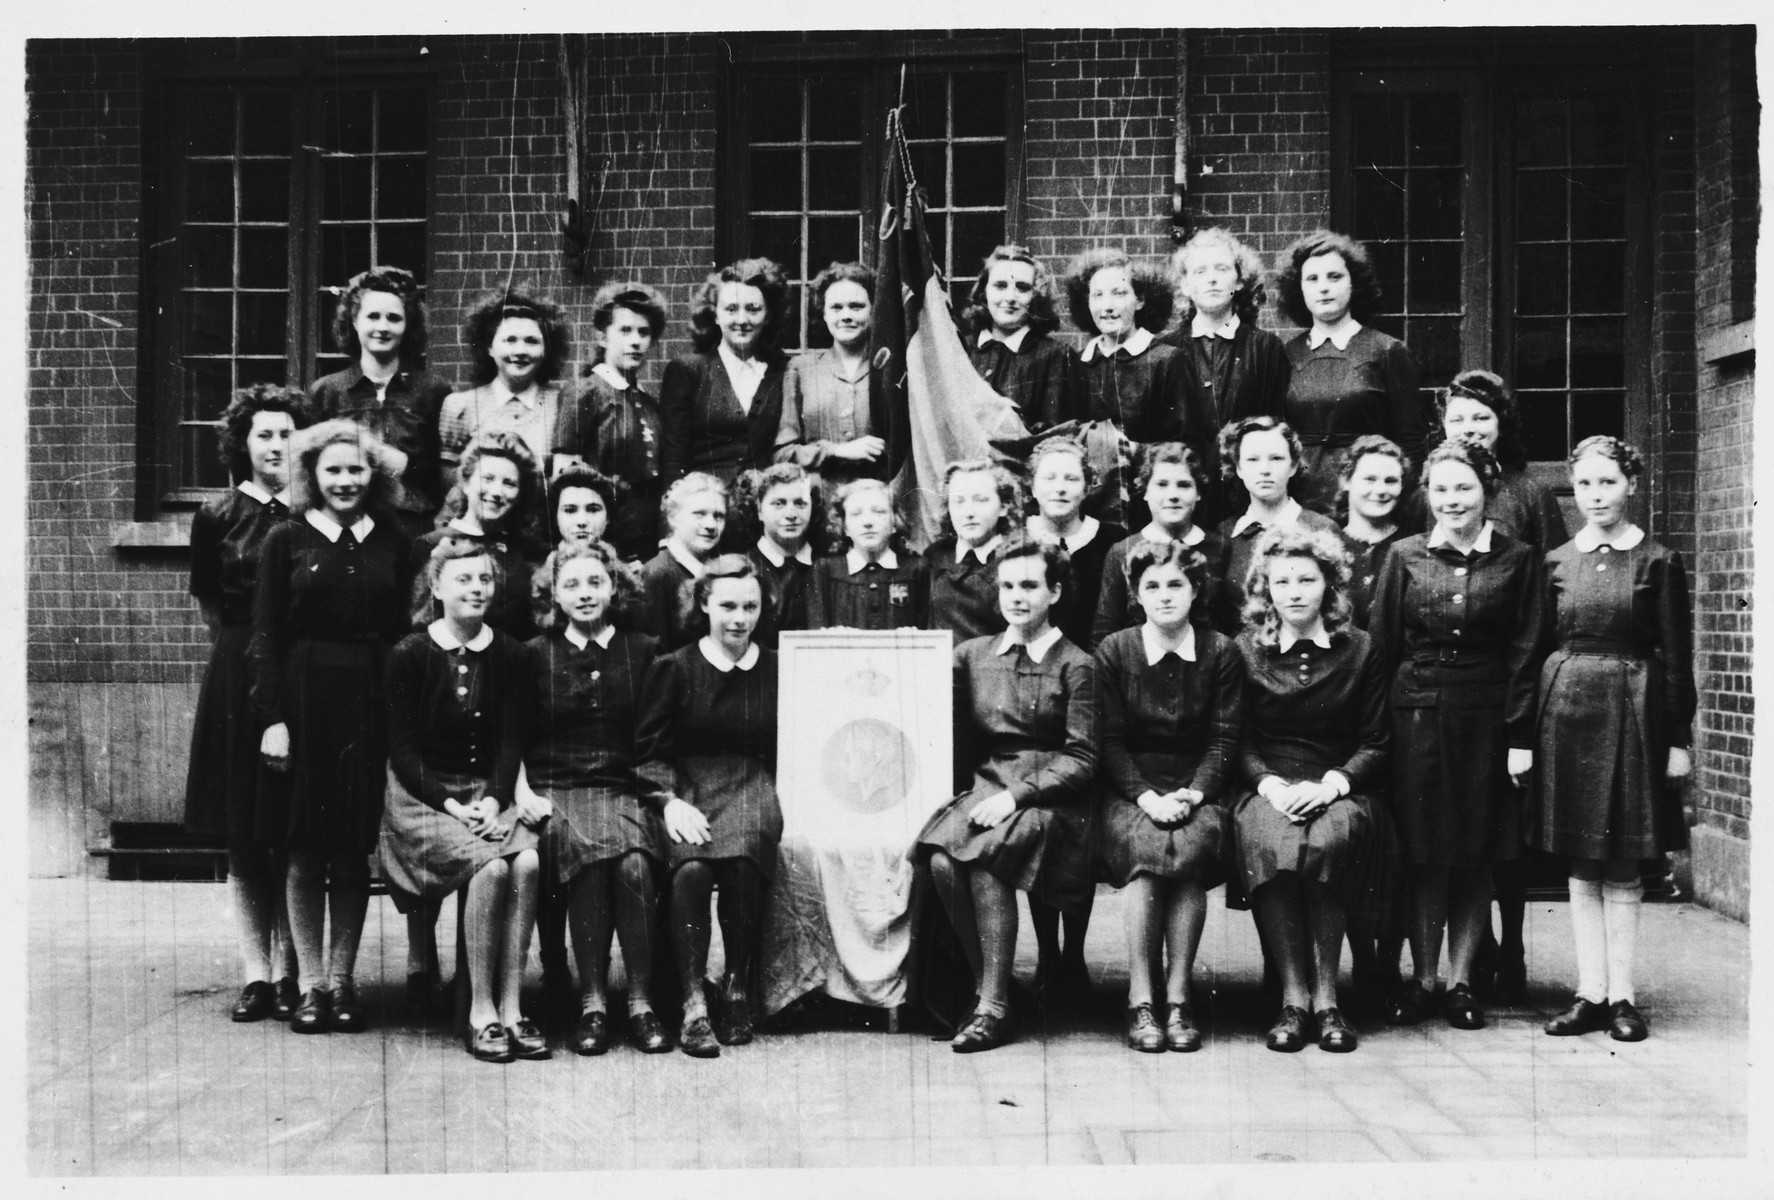 Group portrait of students at Les Soeurs de Notre Dame convent school.  Hena Kohn is pictured in the top row, second from the left.